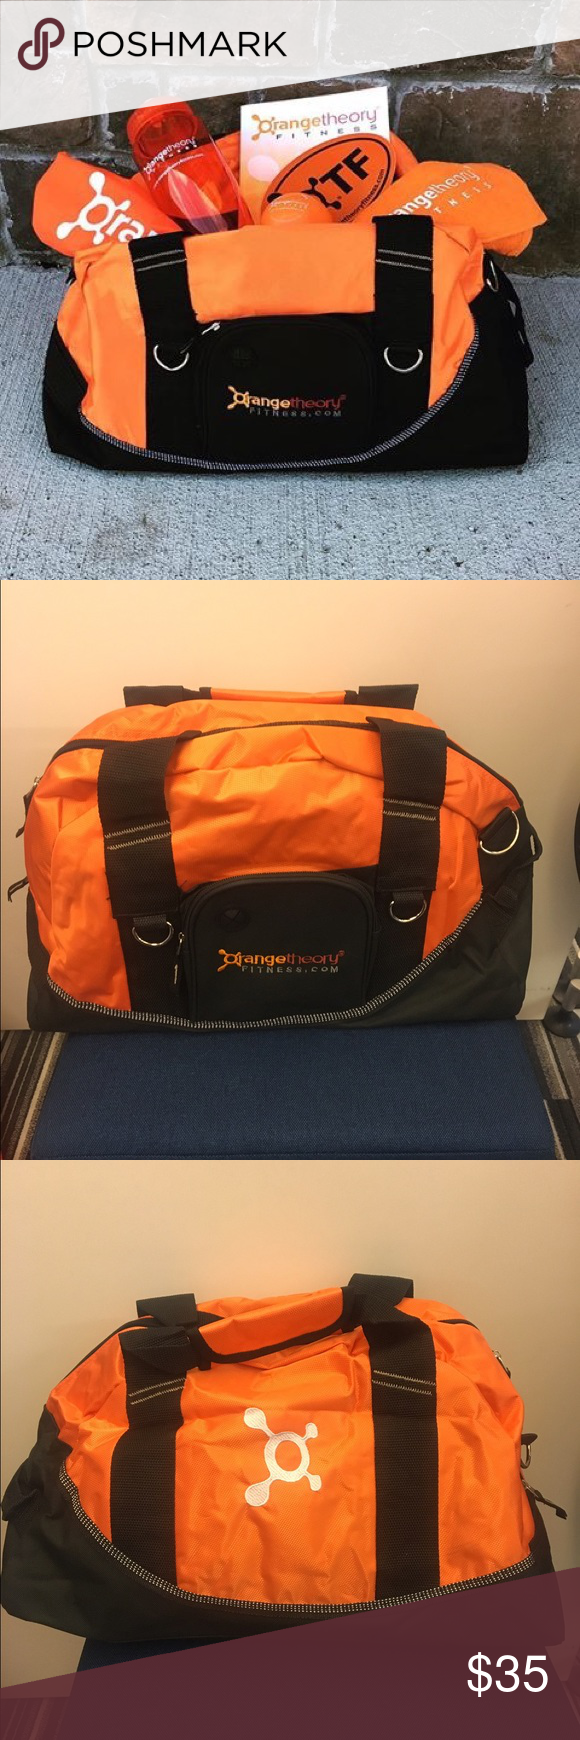 850cc16ea836 OrangeTheory Fitness Duffel Bag 🔥🔥 BRAND NEW 🔥🔥 Fitness duffel with  tons of storage